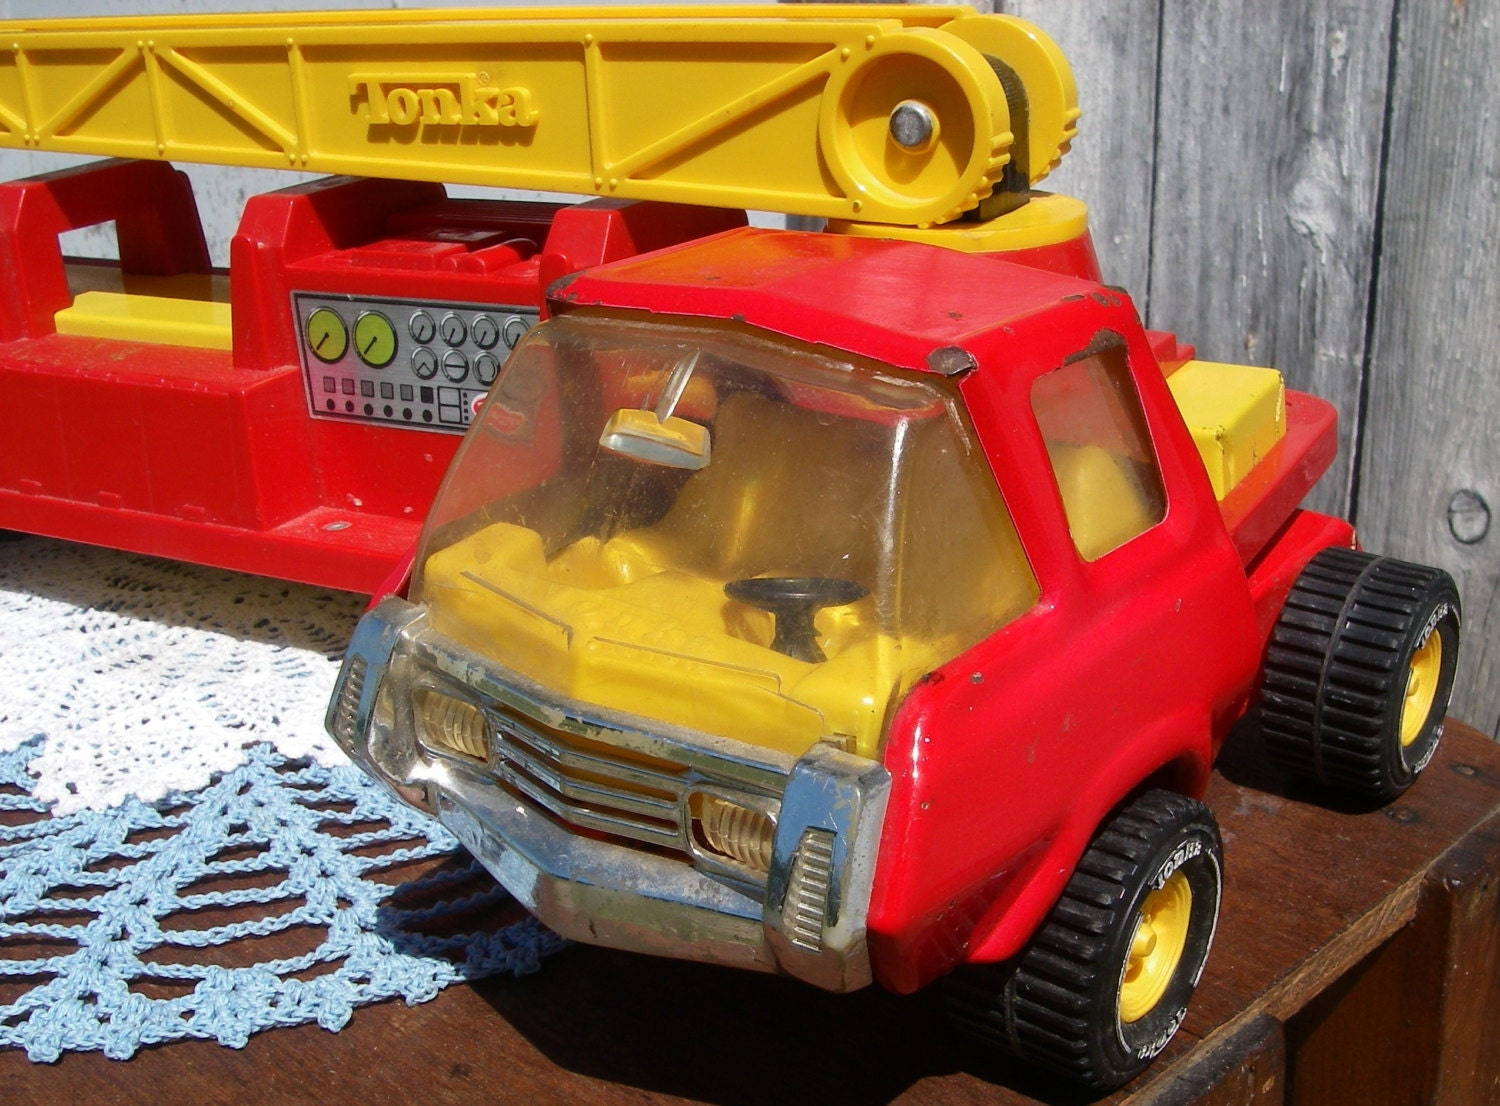 Toys That Were Made In The 1970 : Vintage tonka toys s made in the usa large general